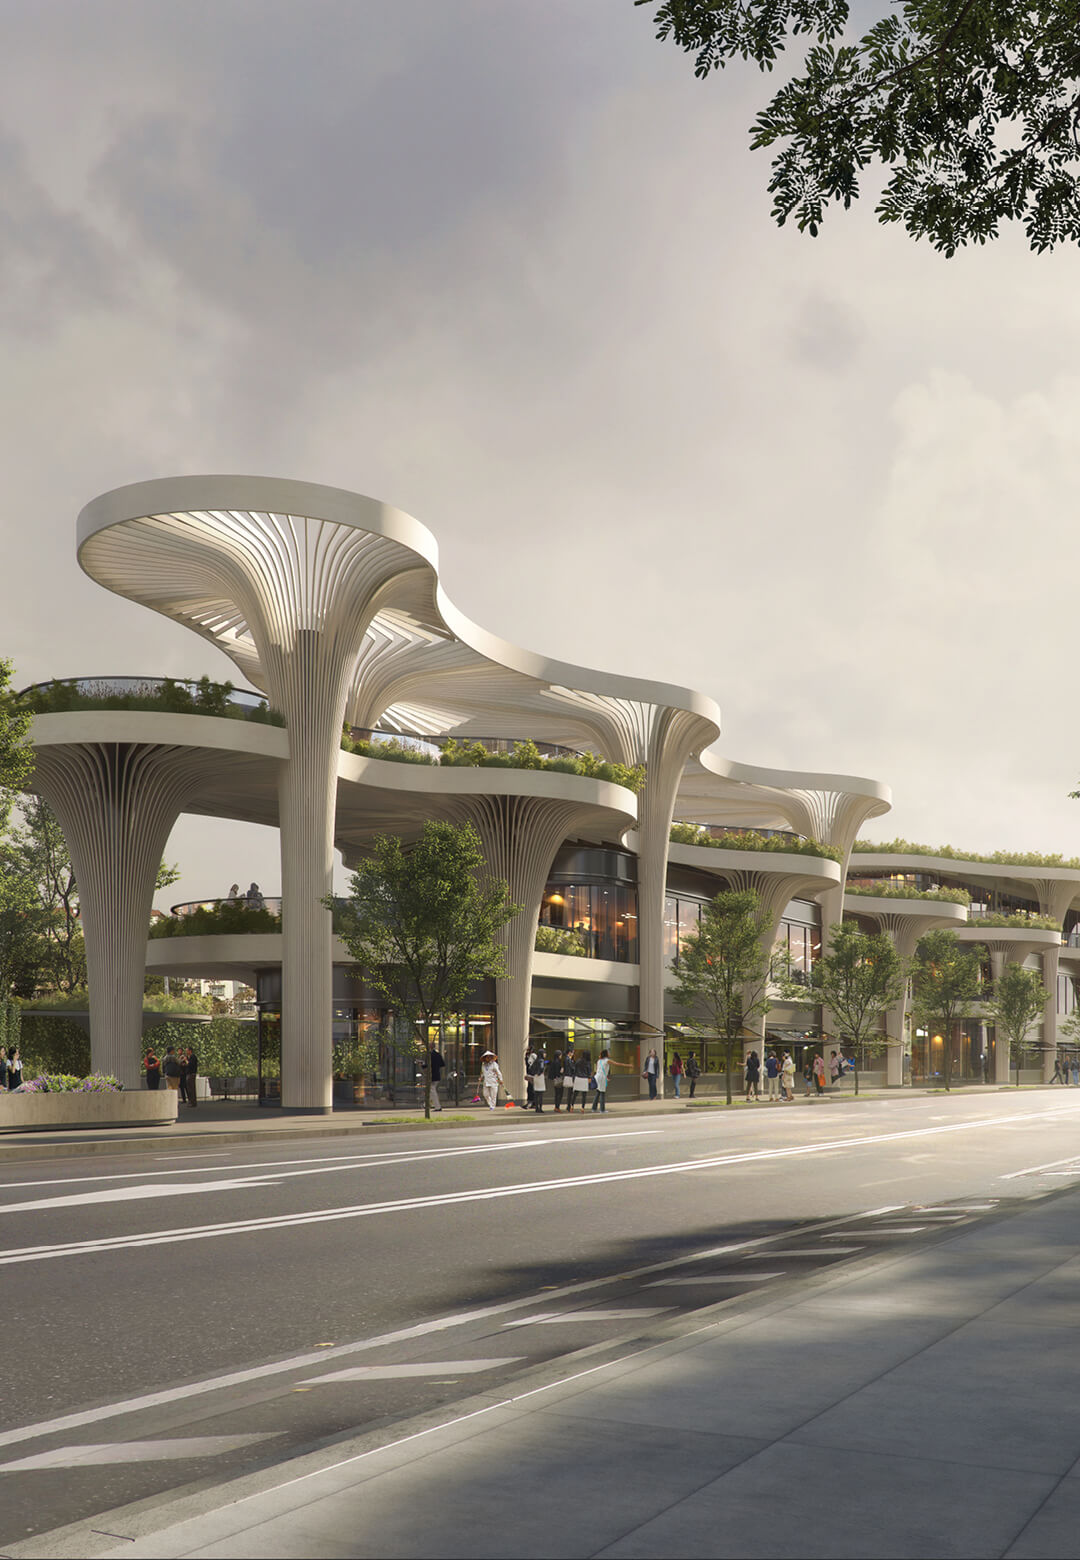 CGI of the Solar Trees Marketplace in Shanghai, China, conceived by Koichi Takada Architects | Solar Trees Marketplace by Koichi Takada Architects | STIRworld